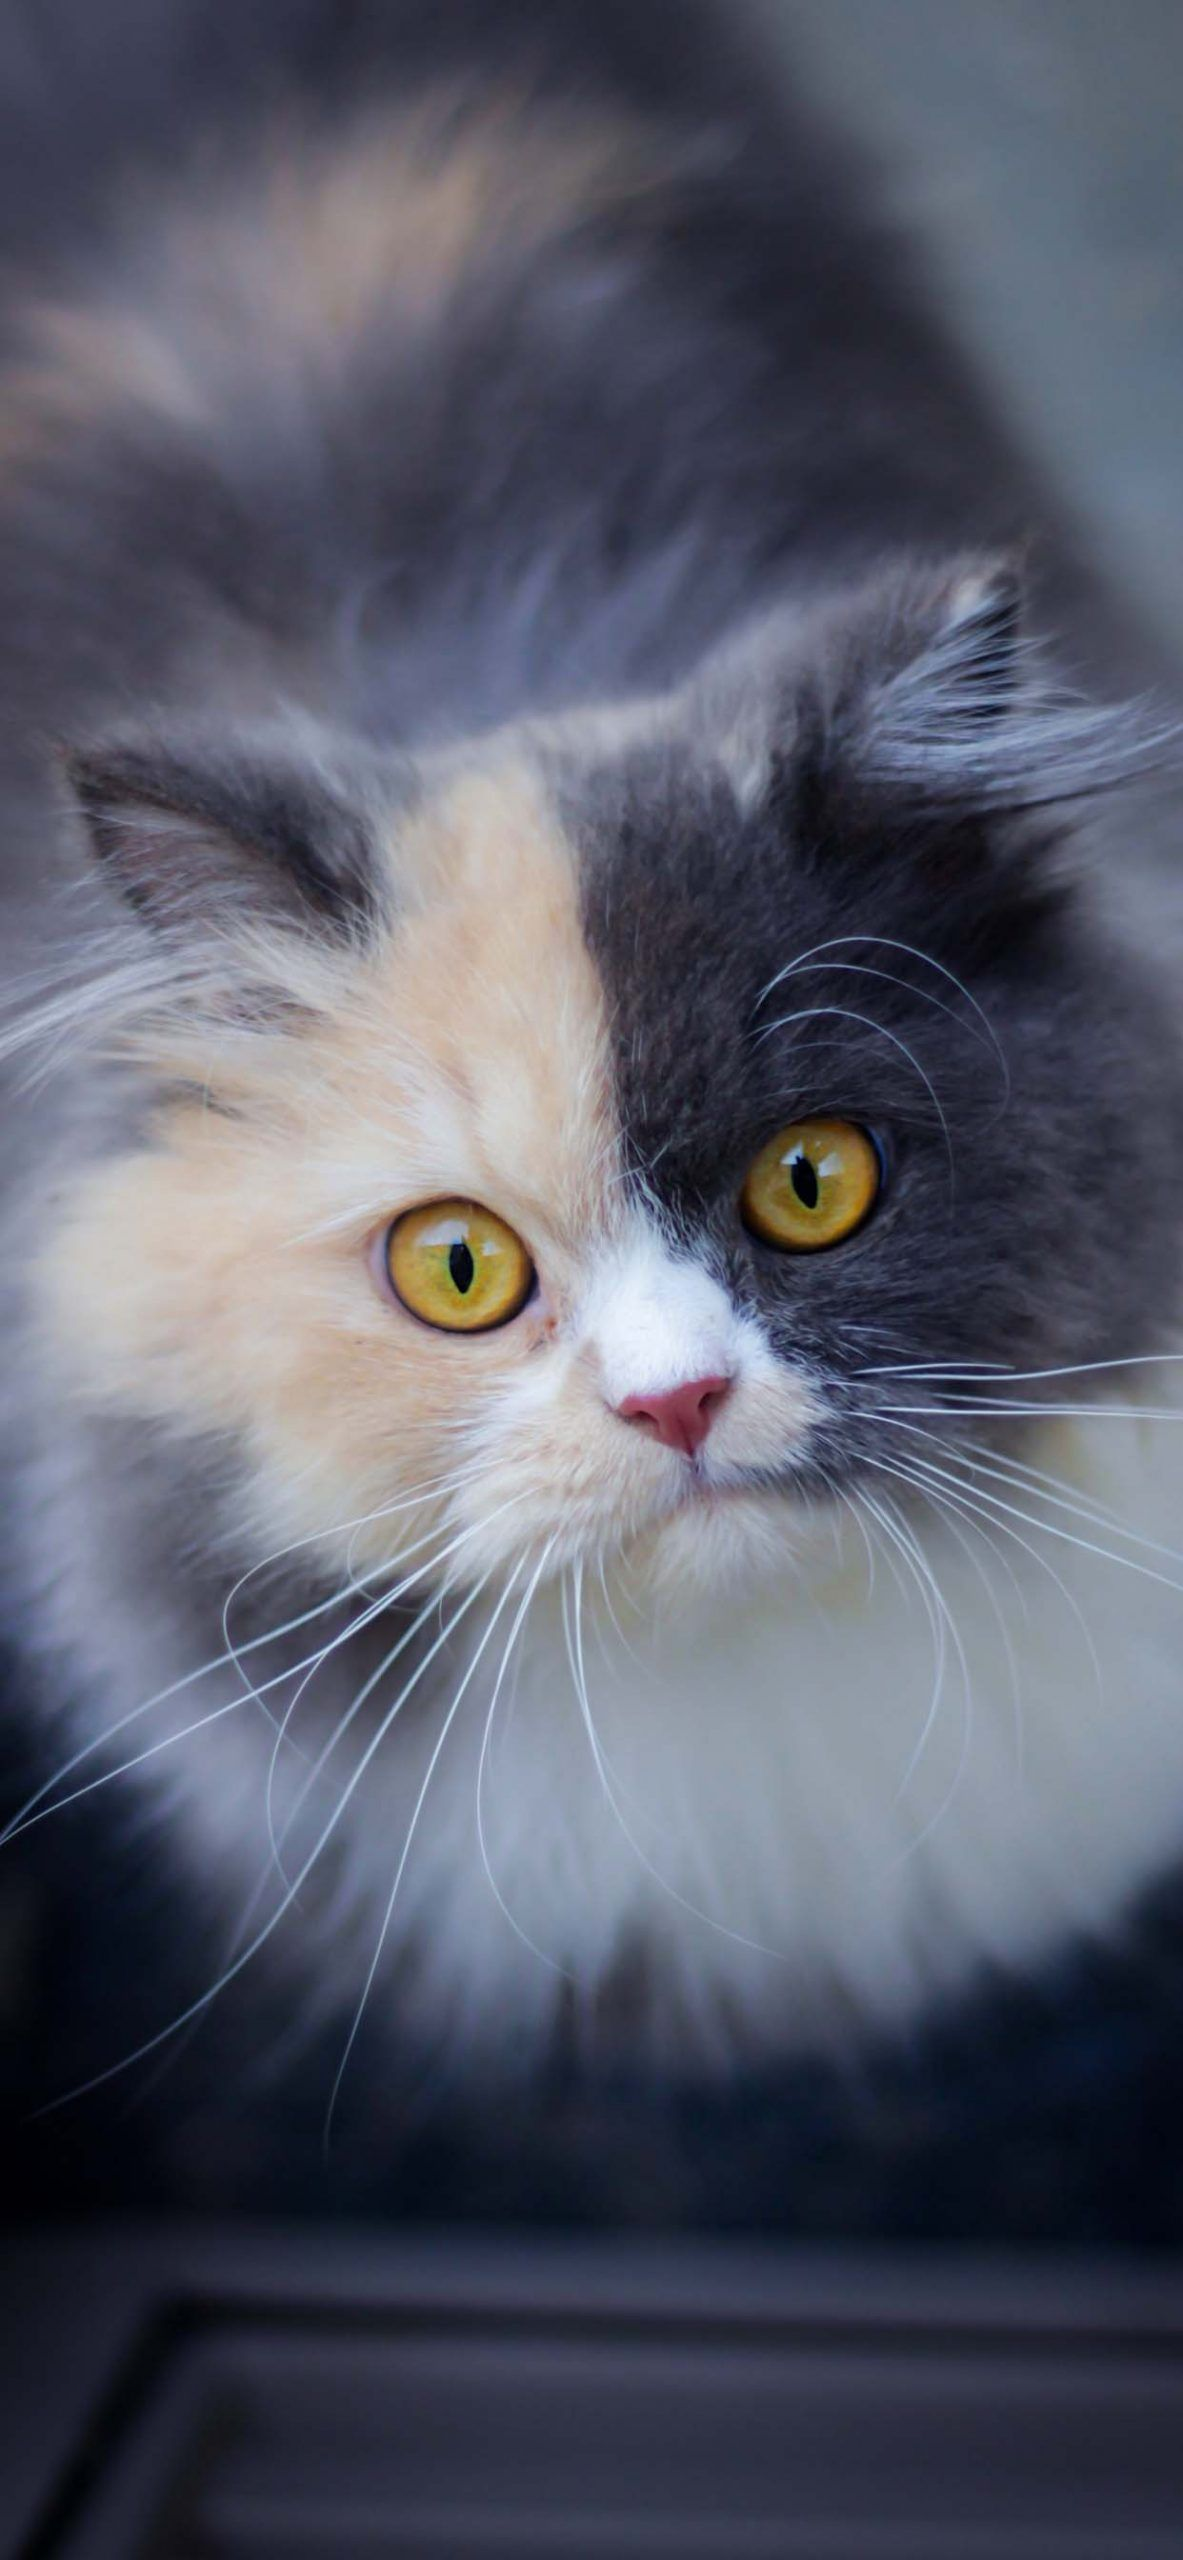 Cute cat wallpapers energize your phones screen in